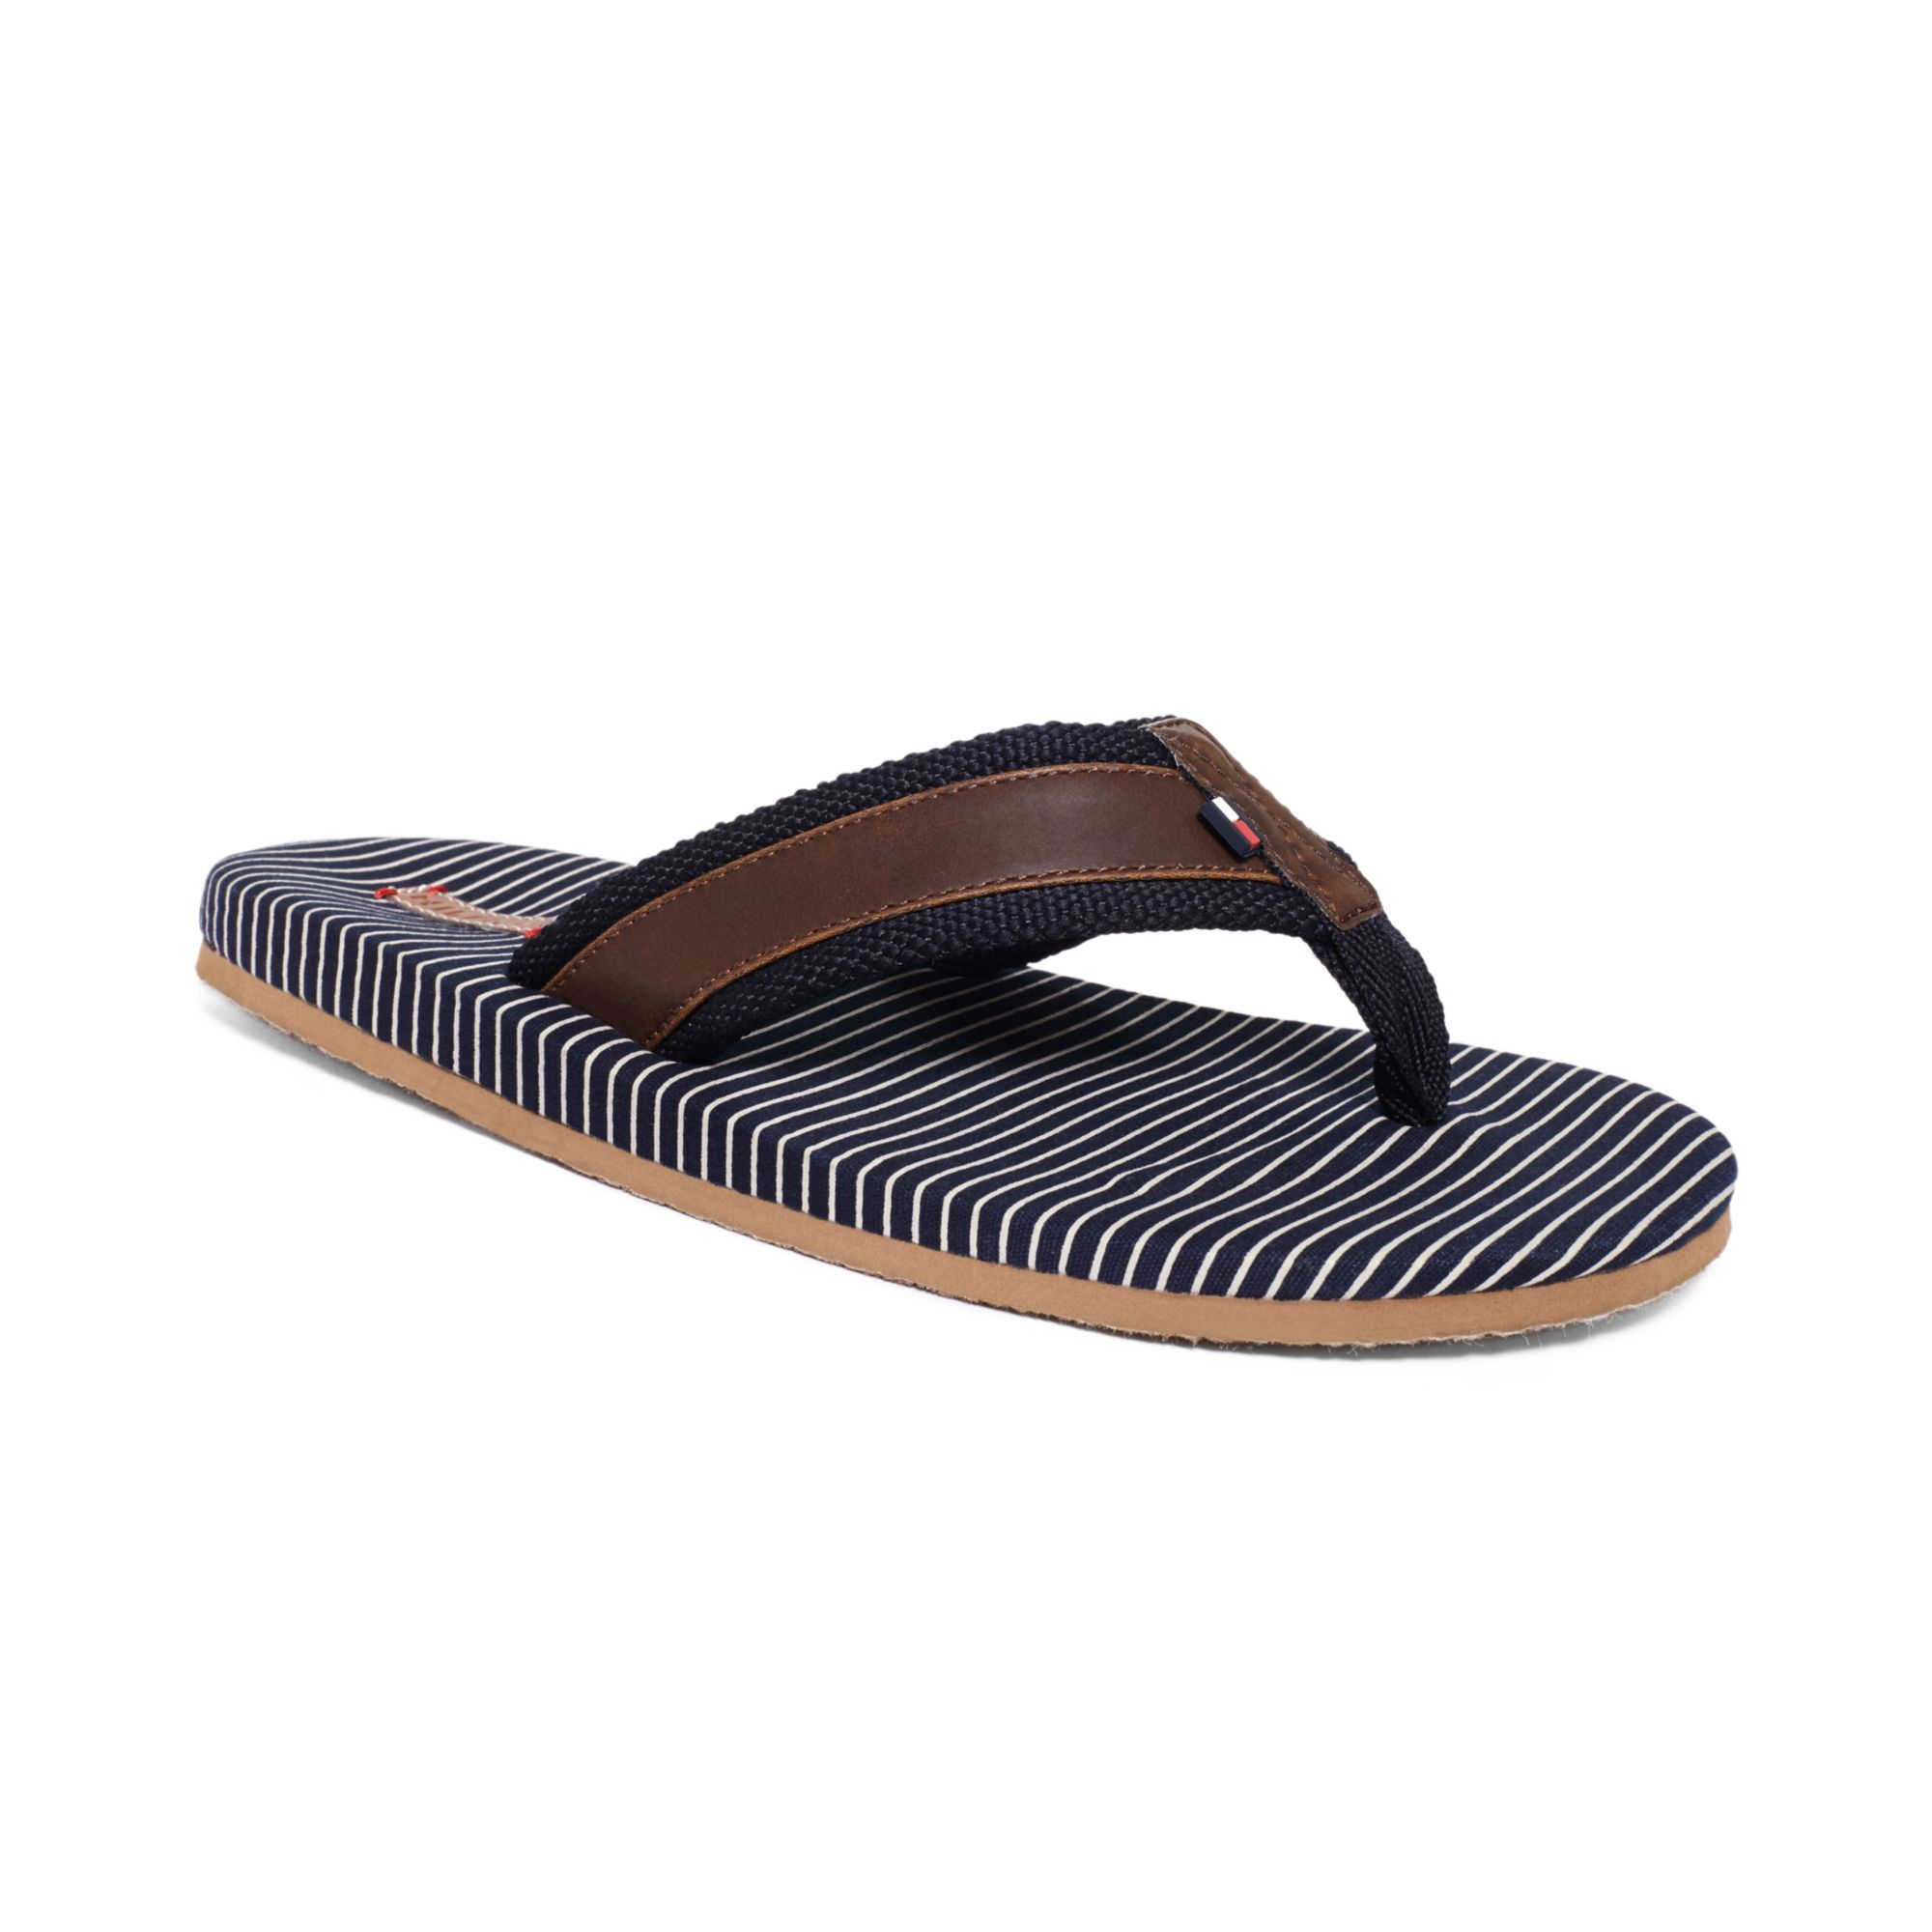 lyst tommy hilfiger marley flip flops in blue for men. Black Bedroom Furniture Sets. Home Design Ideas